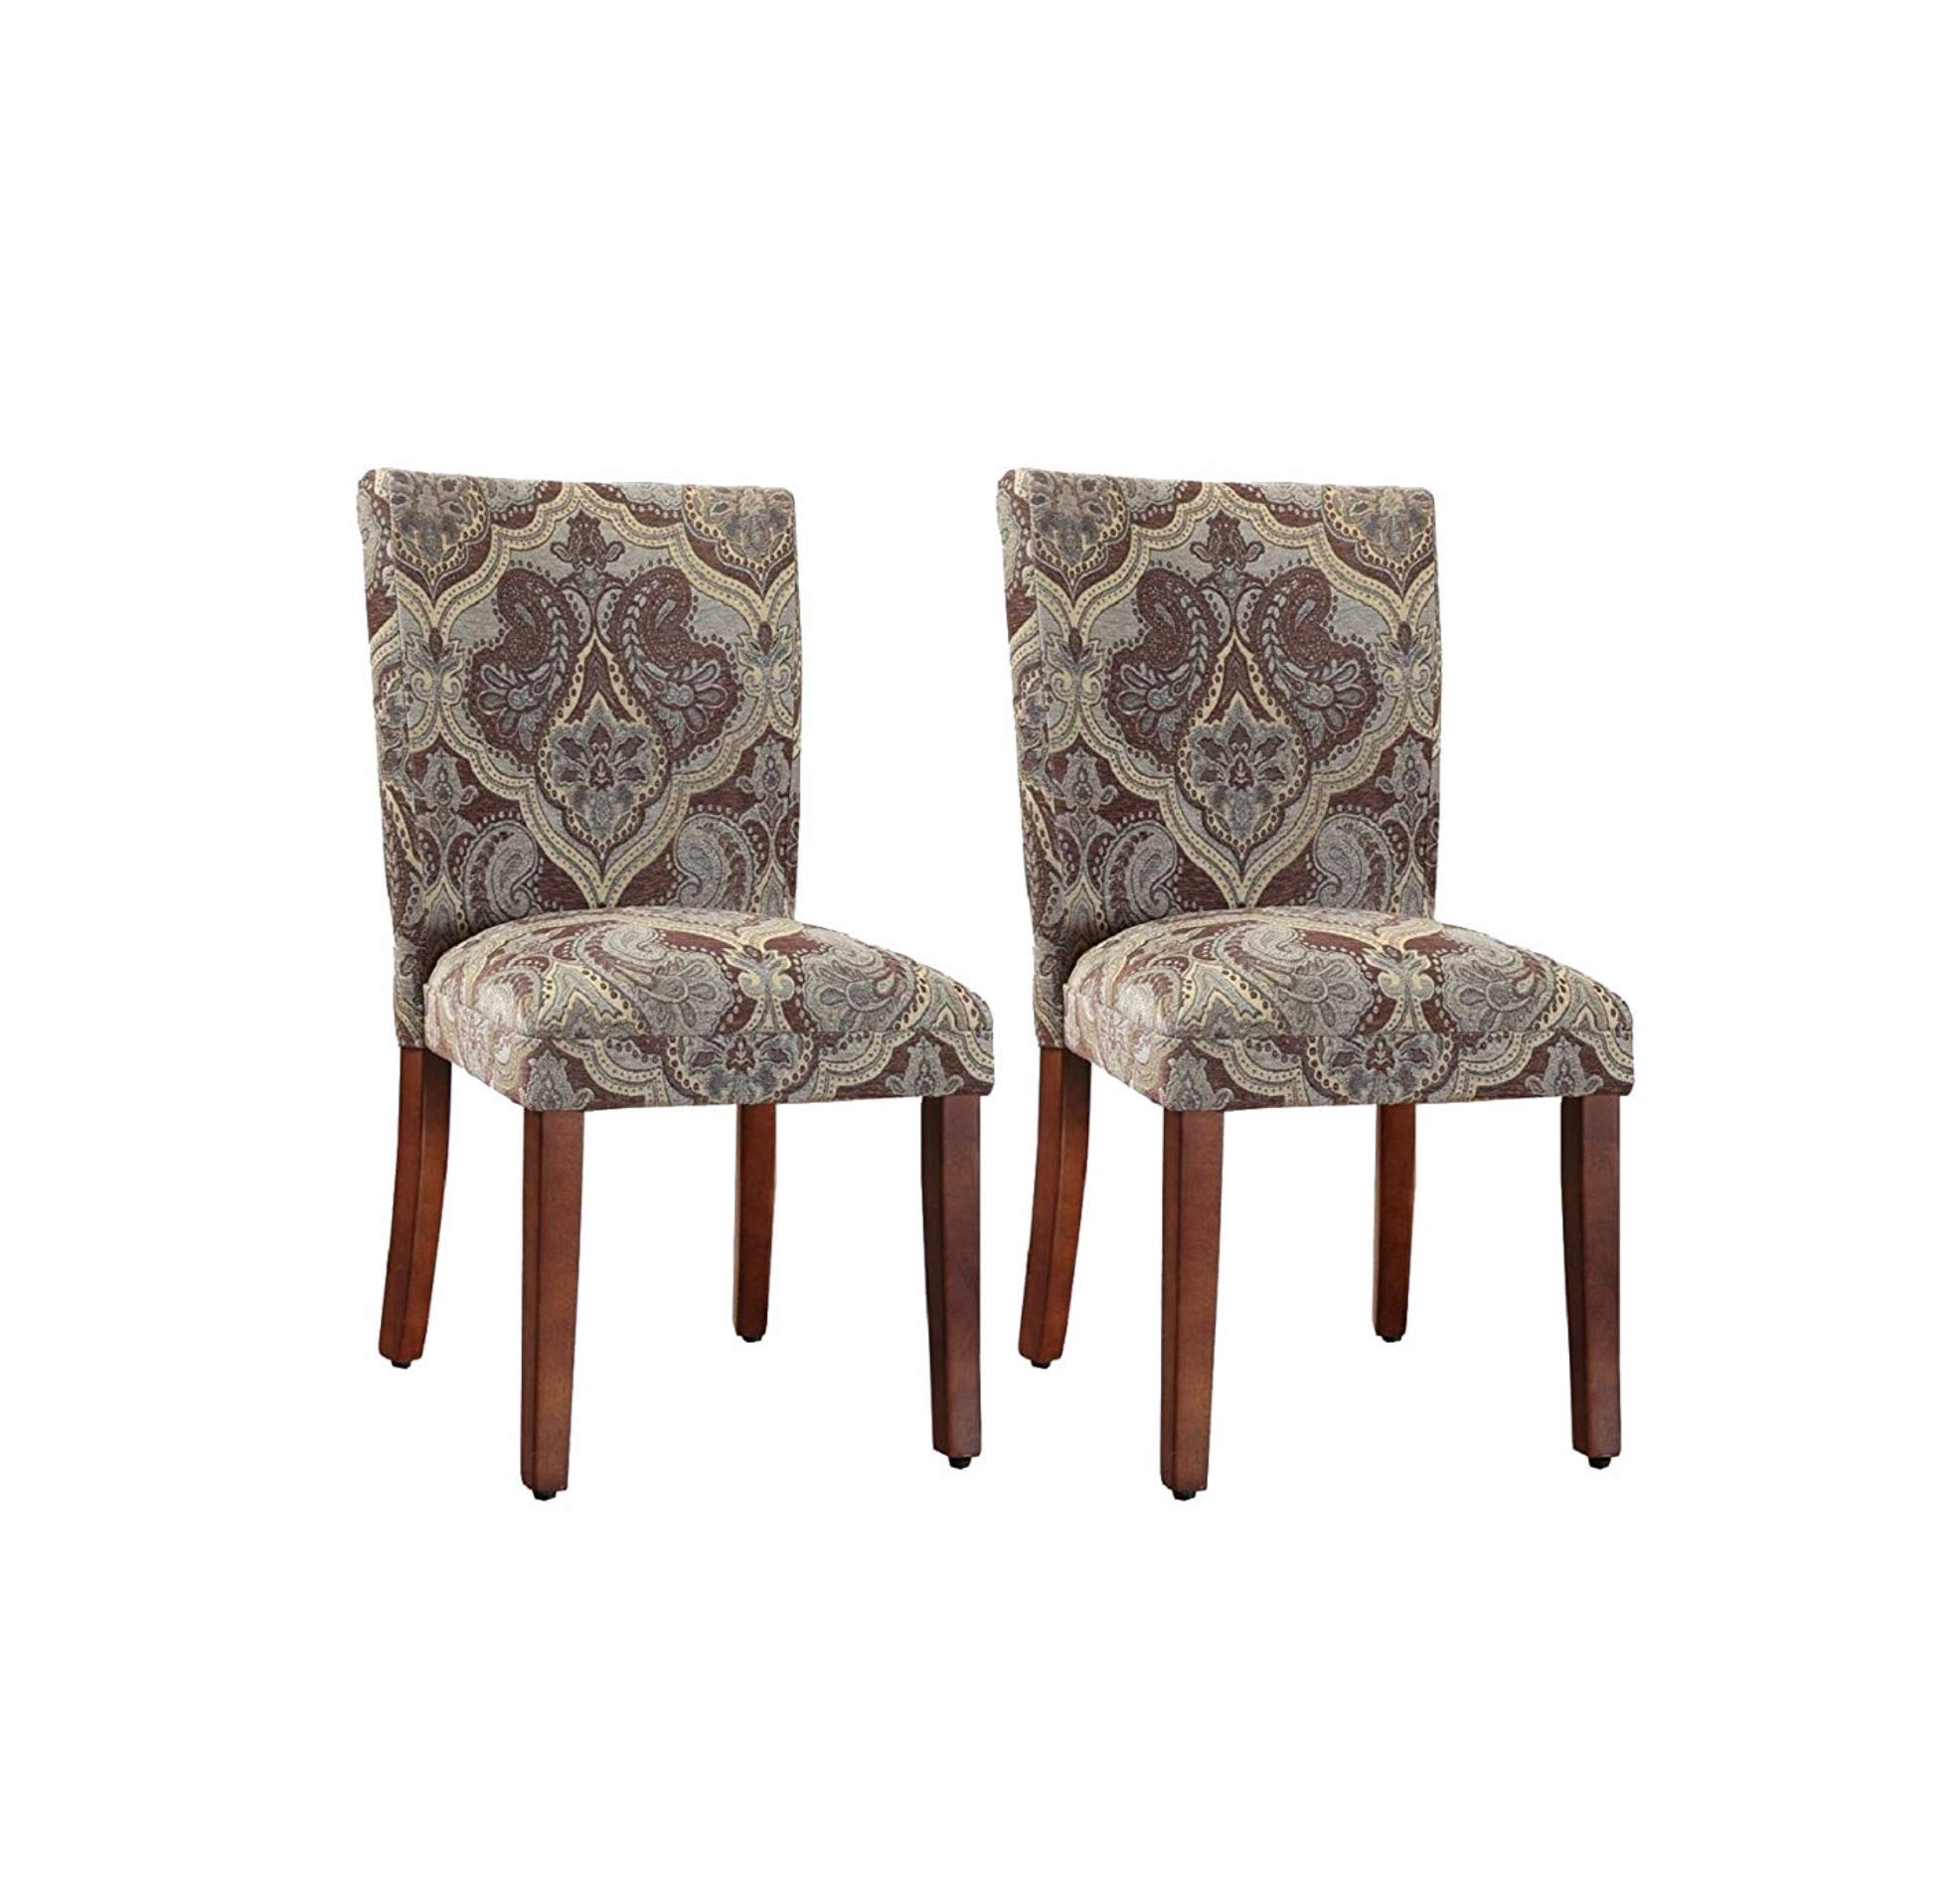 HomePop Parsons Upholstered Accent Dining Chair, Set of 2, Blue and Brown Paisley